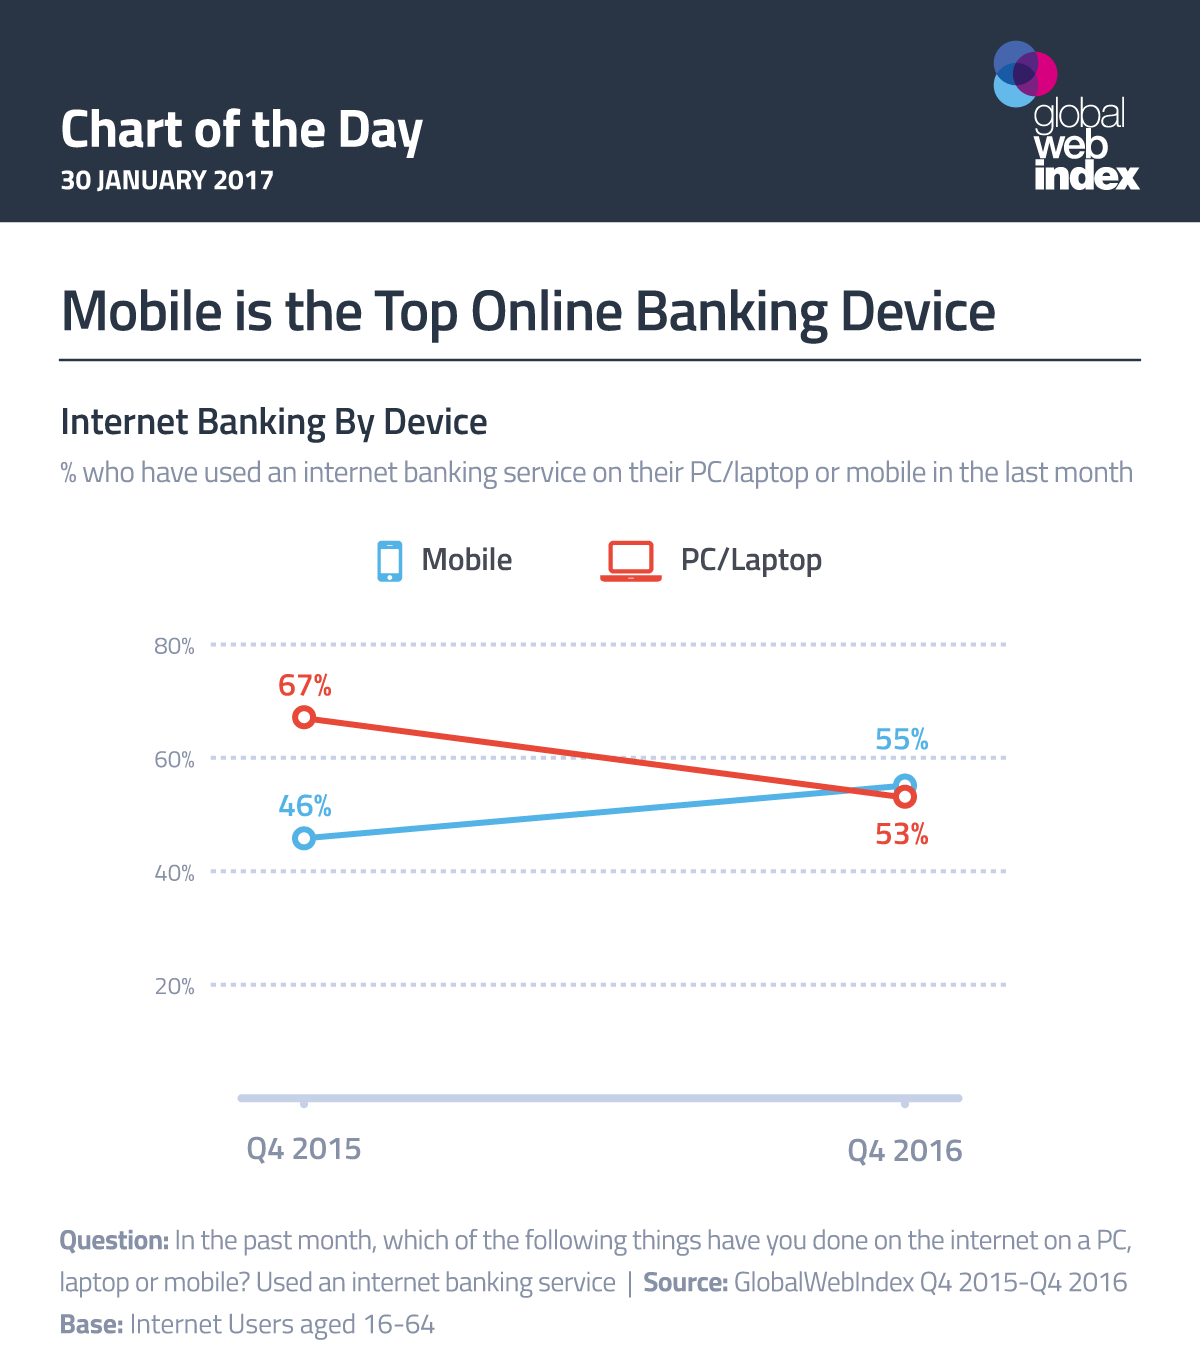 Mobile is the Top Online Banking Device